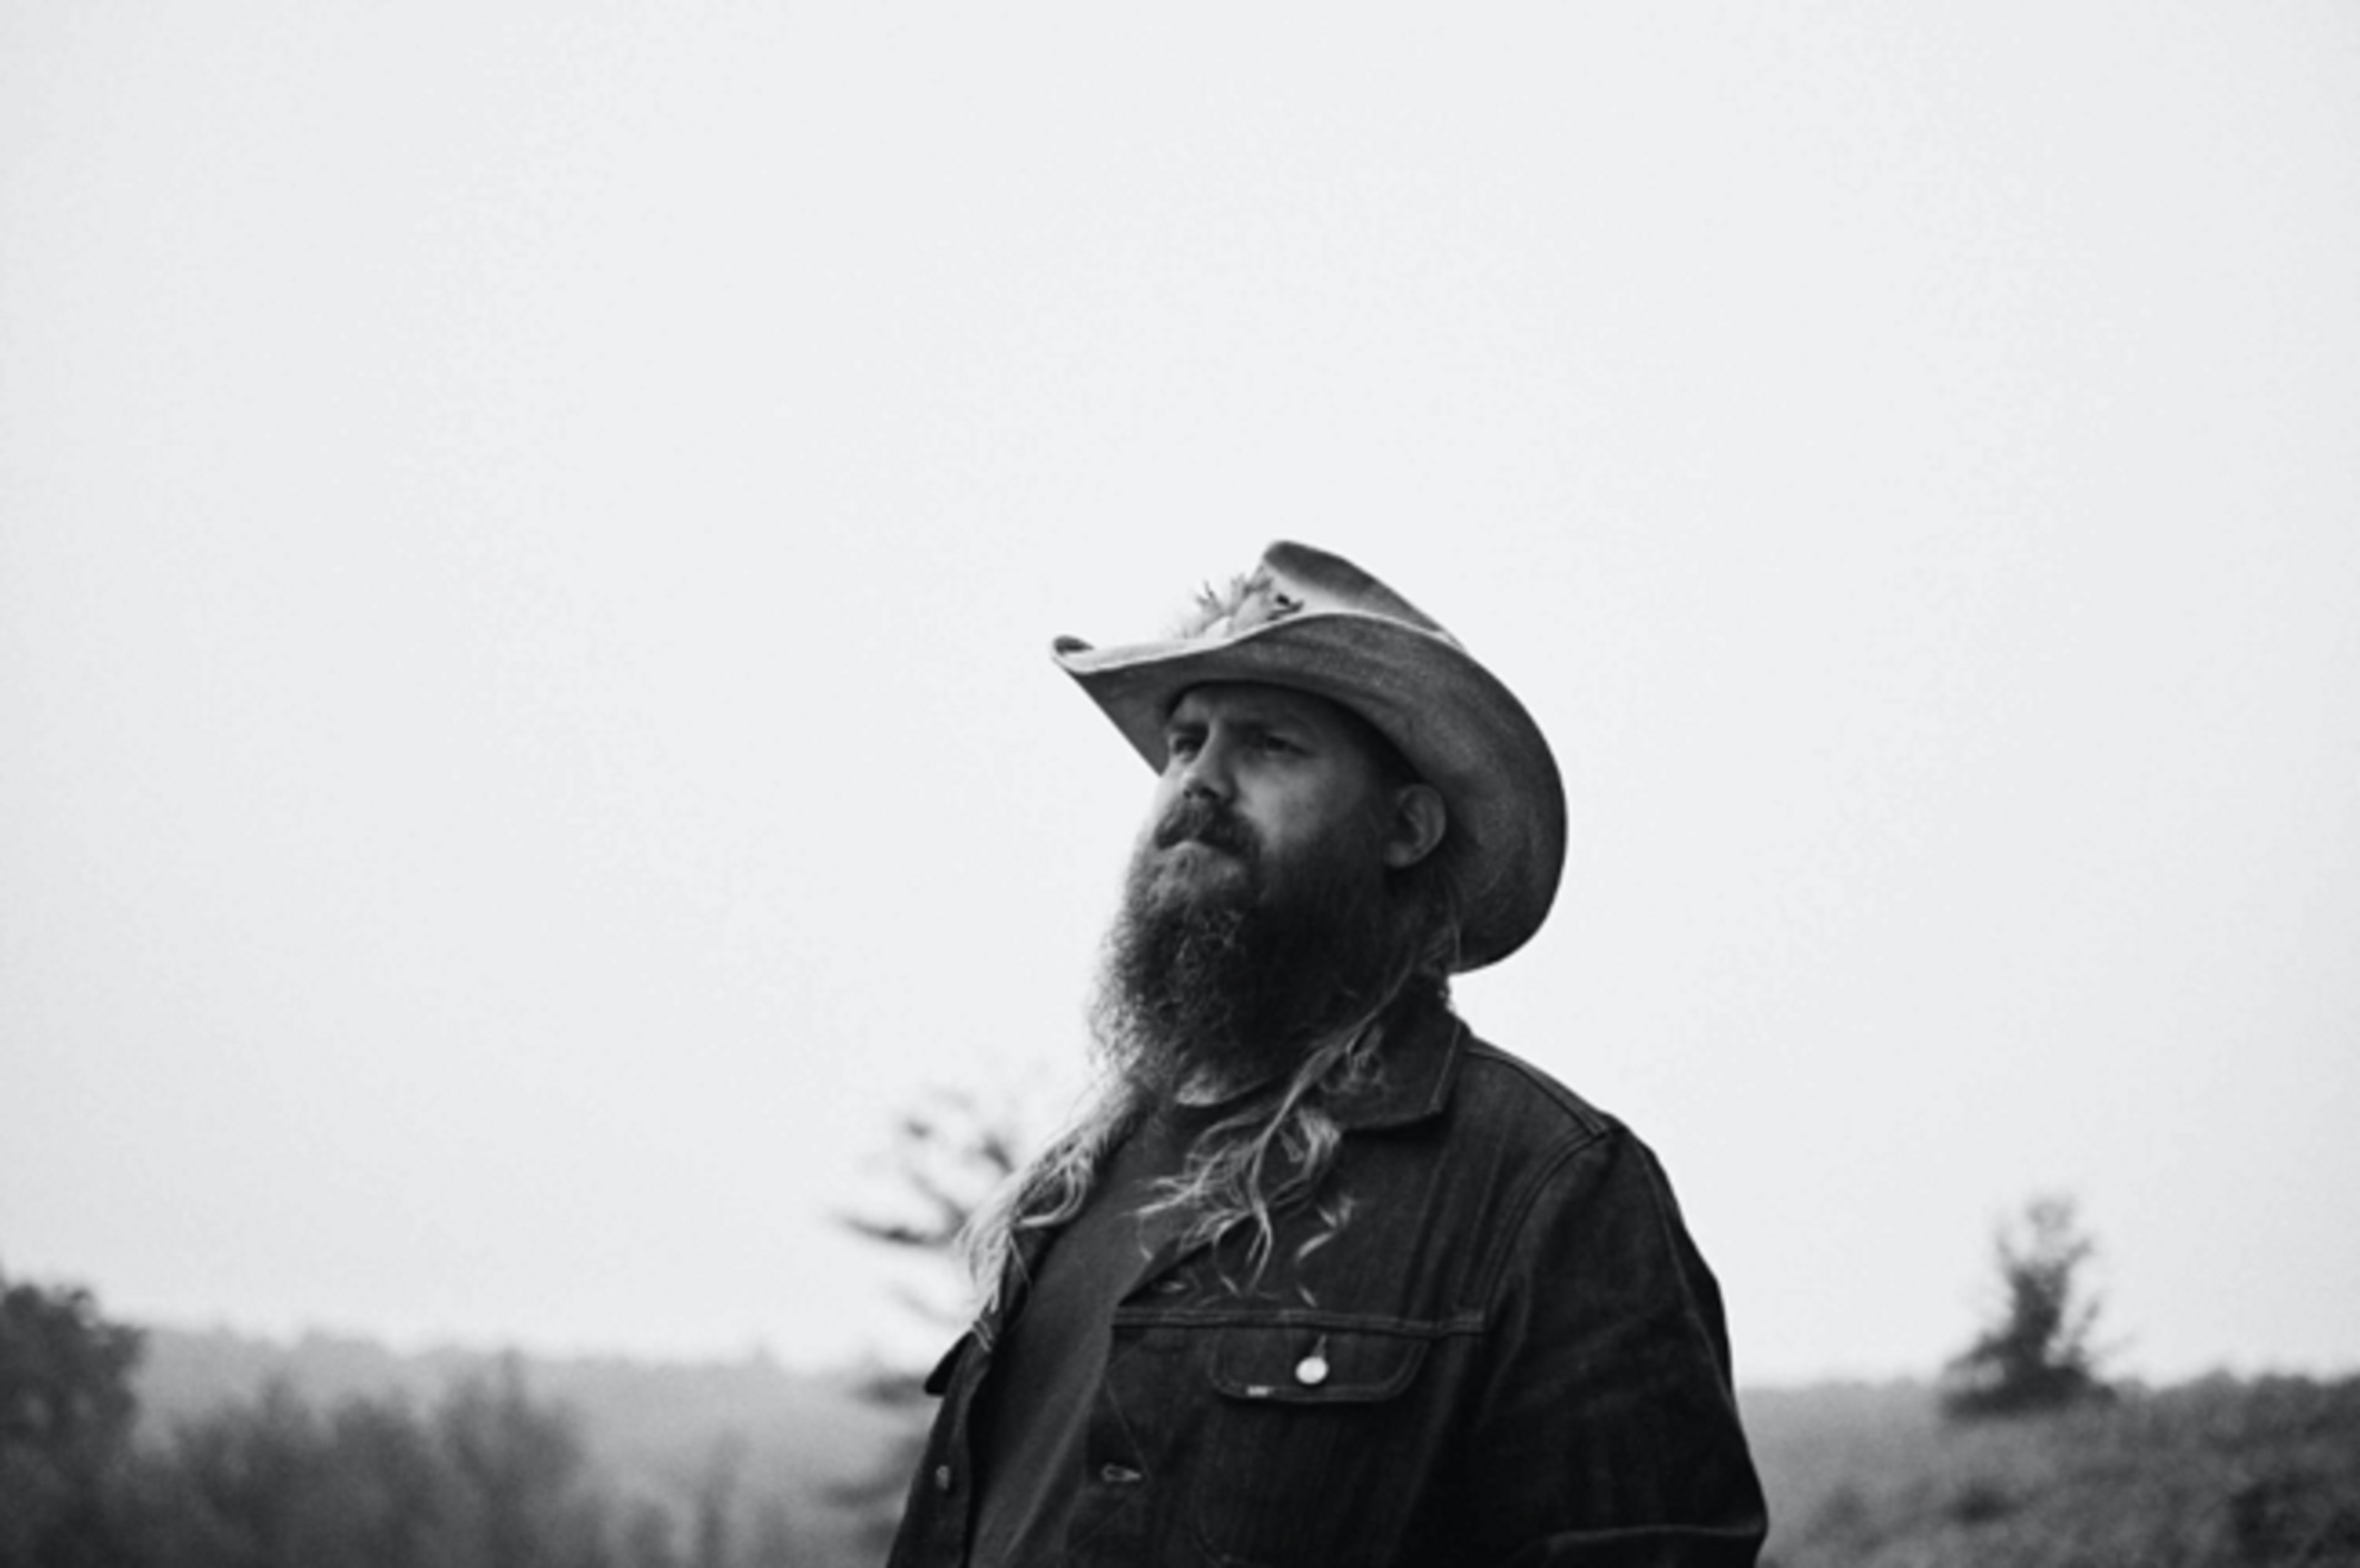 Chris Stapleton wins Album of the Year at 56th ACM Awards